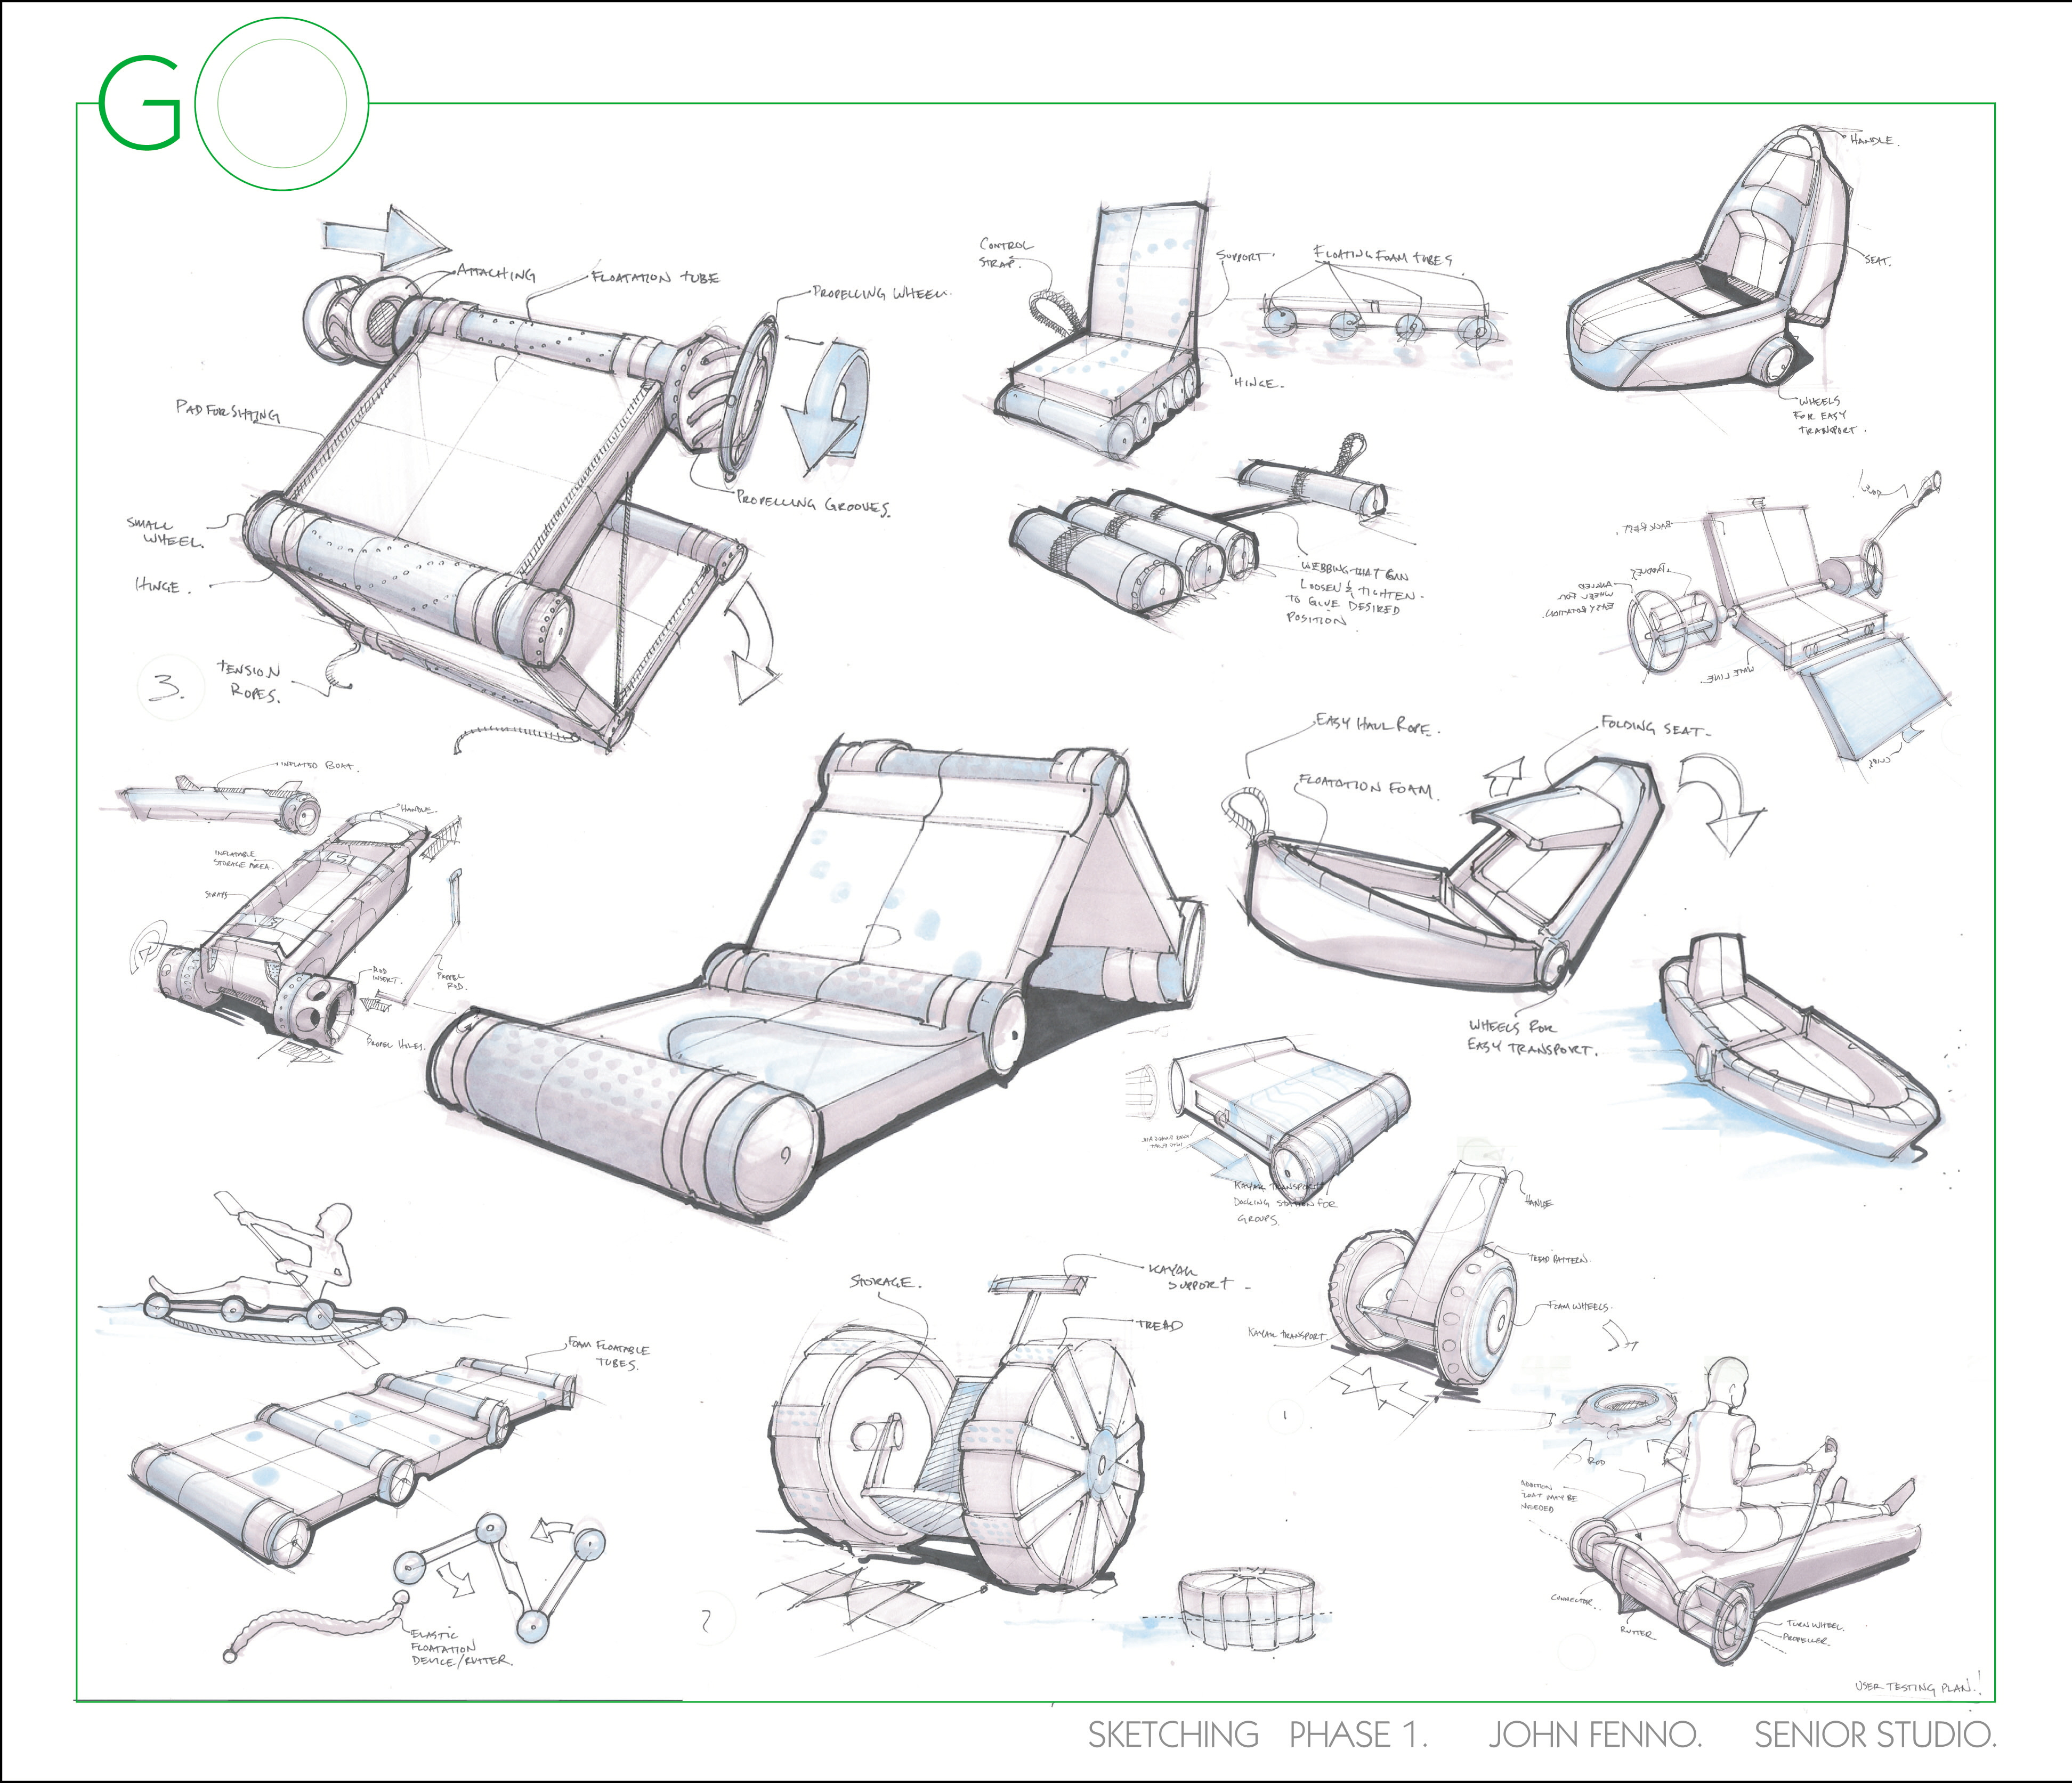 Industrial Design most time consuming majors